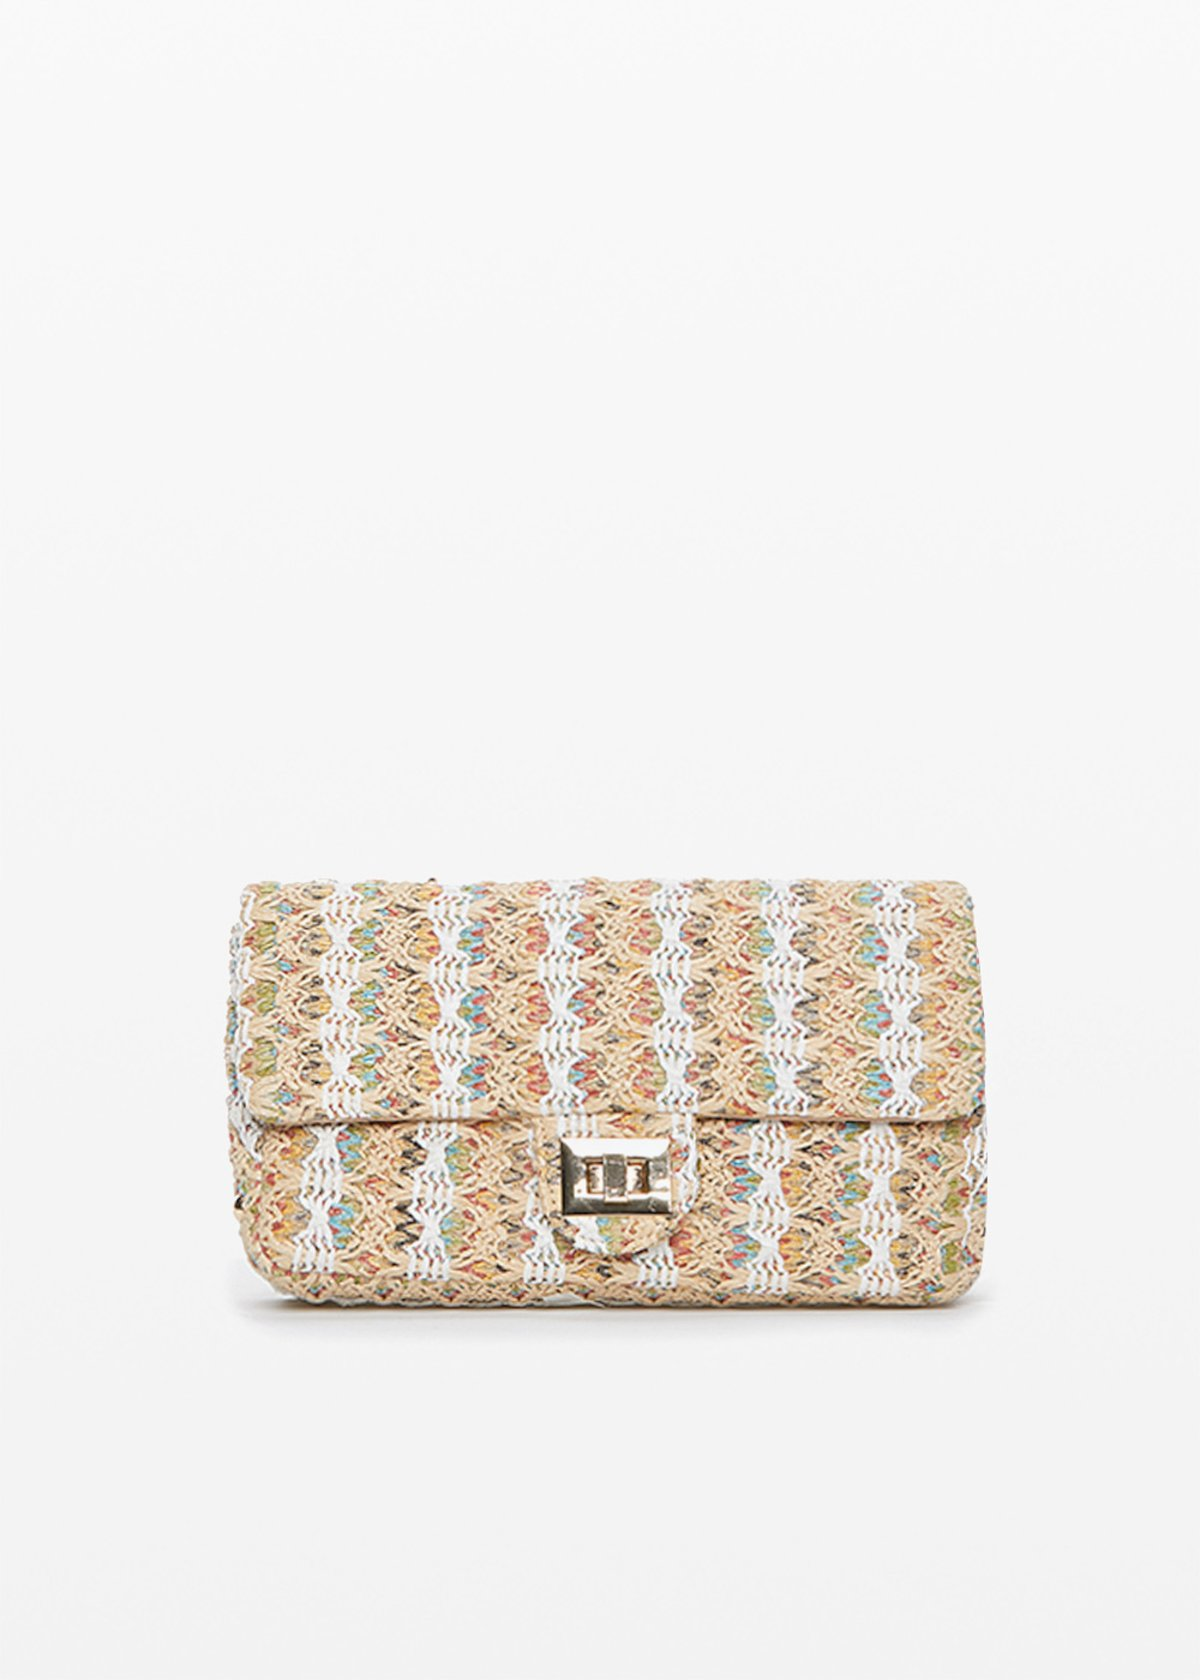 Boss multicolour clutch bag with metal closure - Nomad    / Ananas Fantasia - Woman